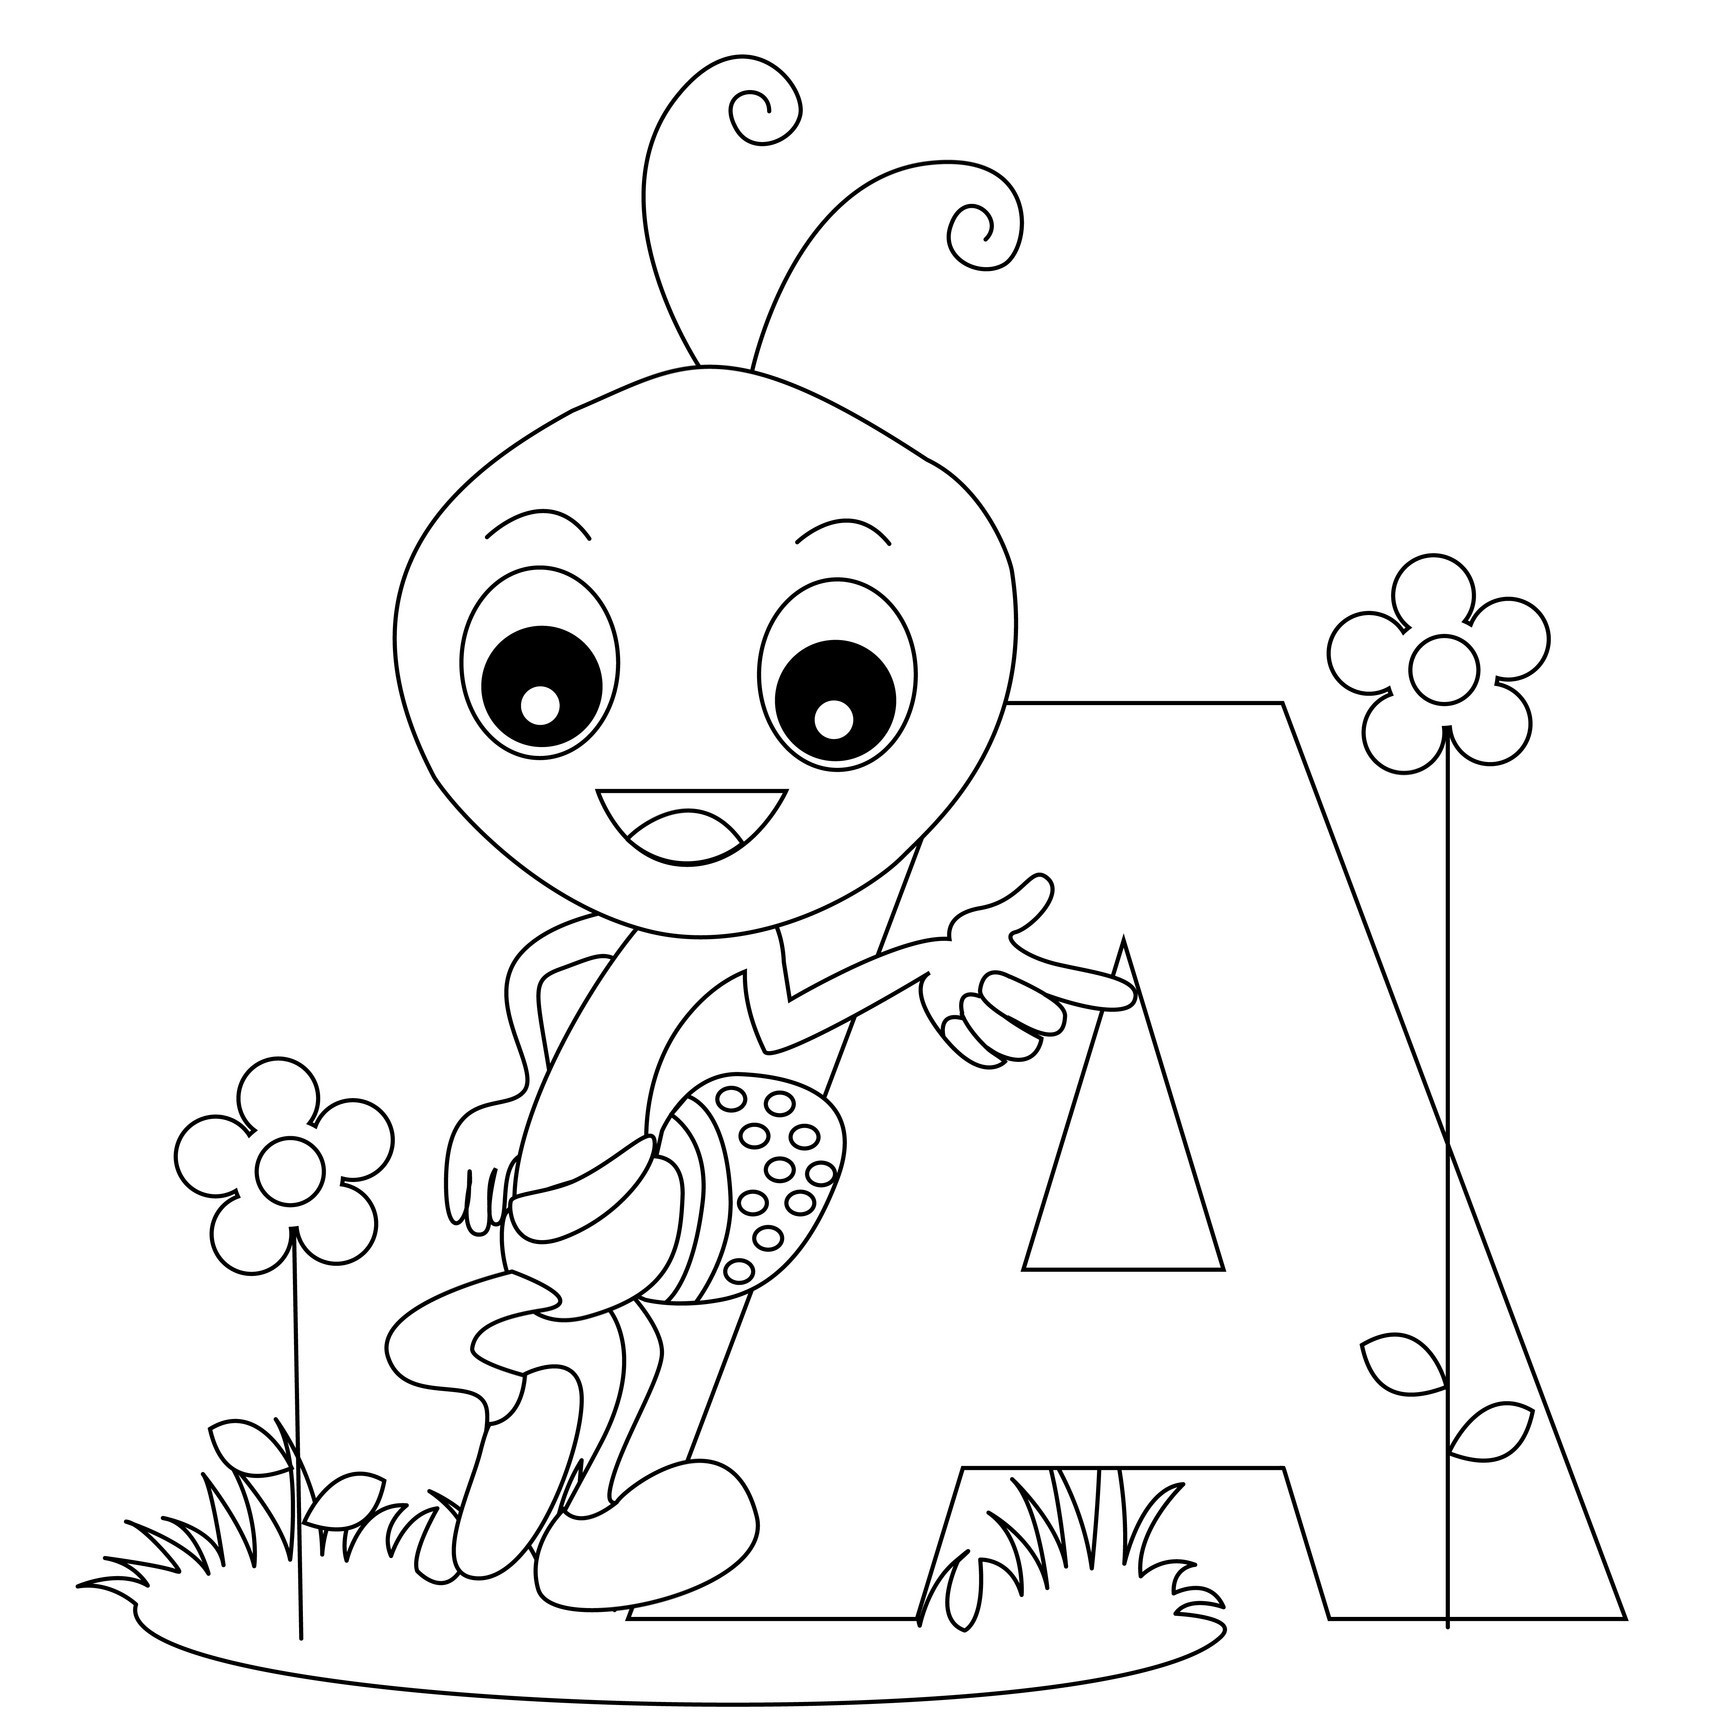 Best ideas about Free Printable Coloring Sheets For Preschoolers Alphabets . Save or Pin Free Printable Alphabet Coloring Pages for Kids Best Now.